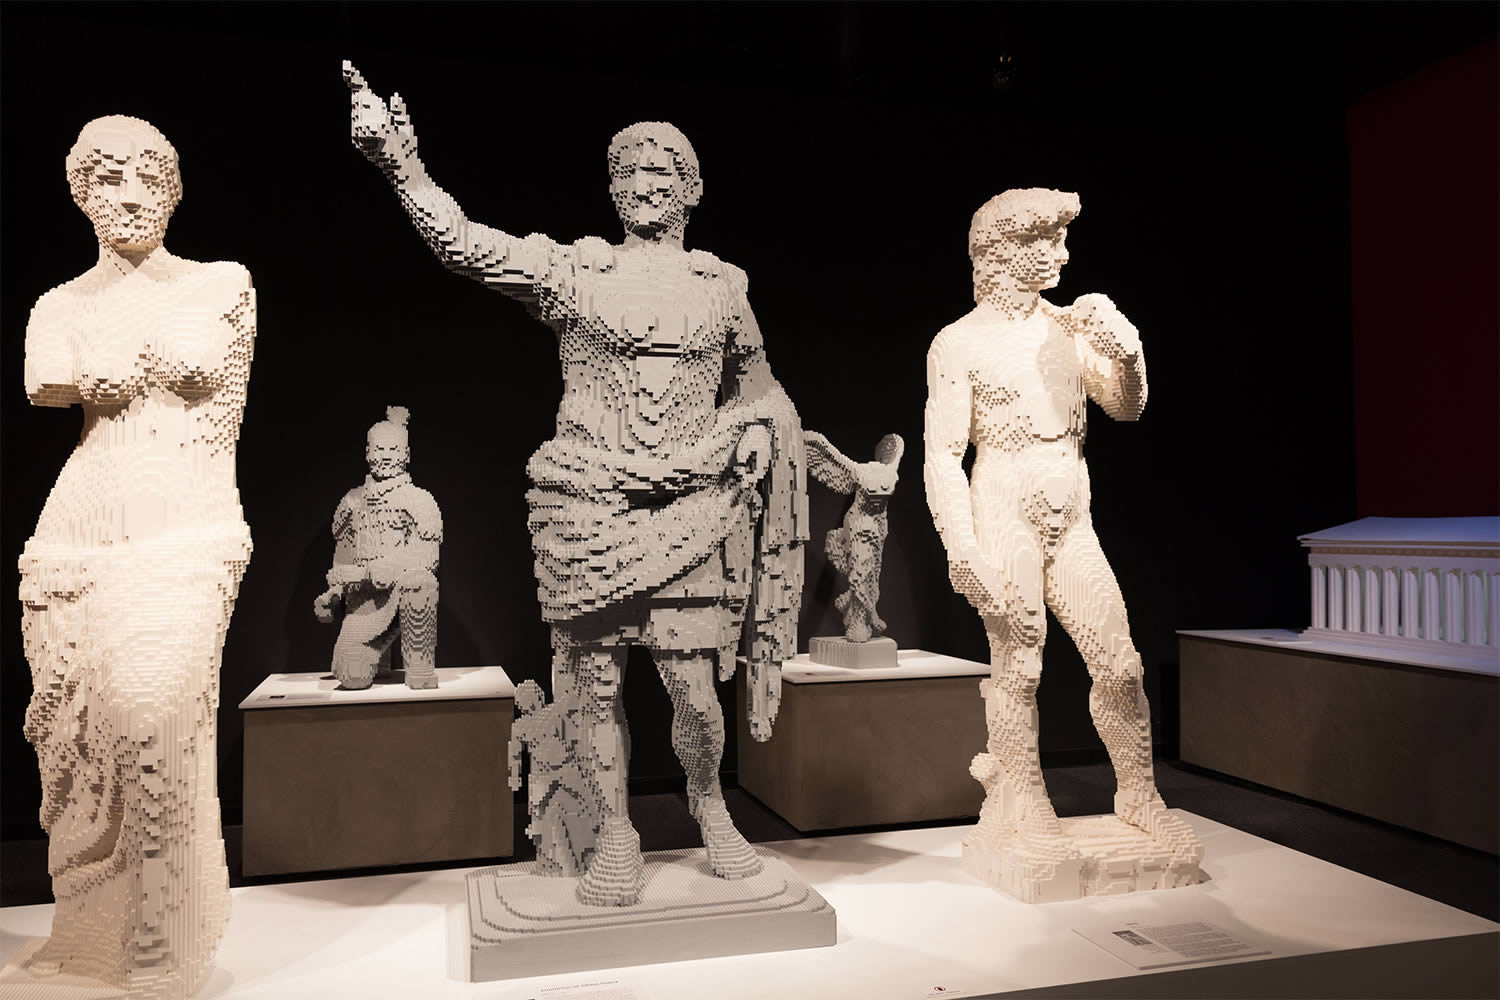 david and classical art figures, lego by nathan sawaya